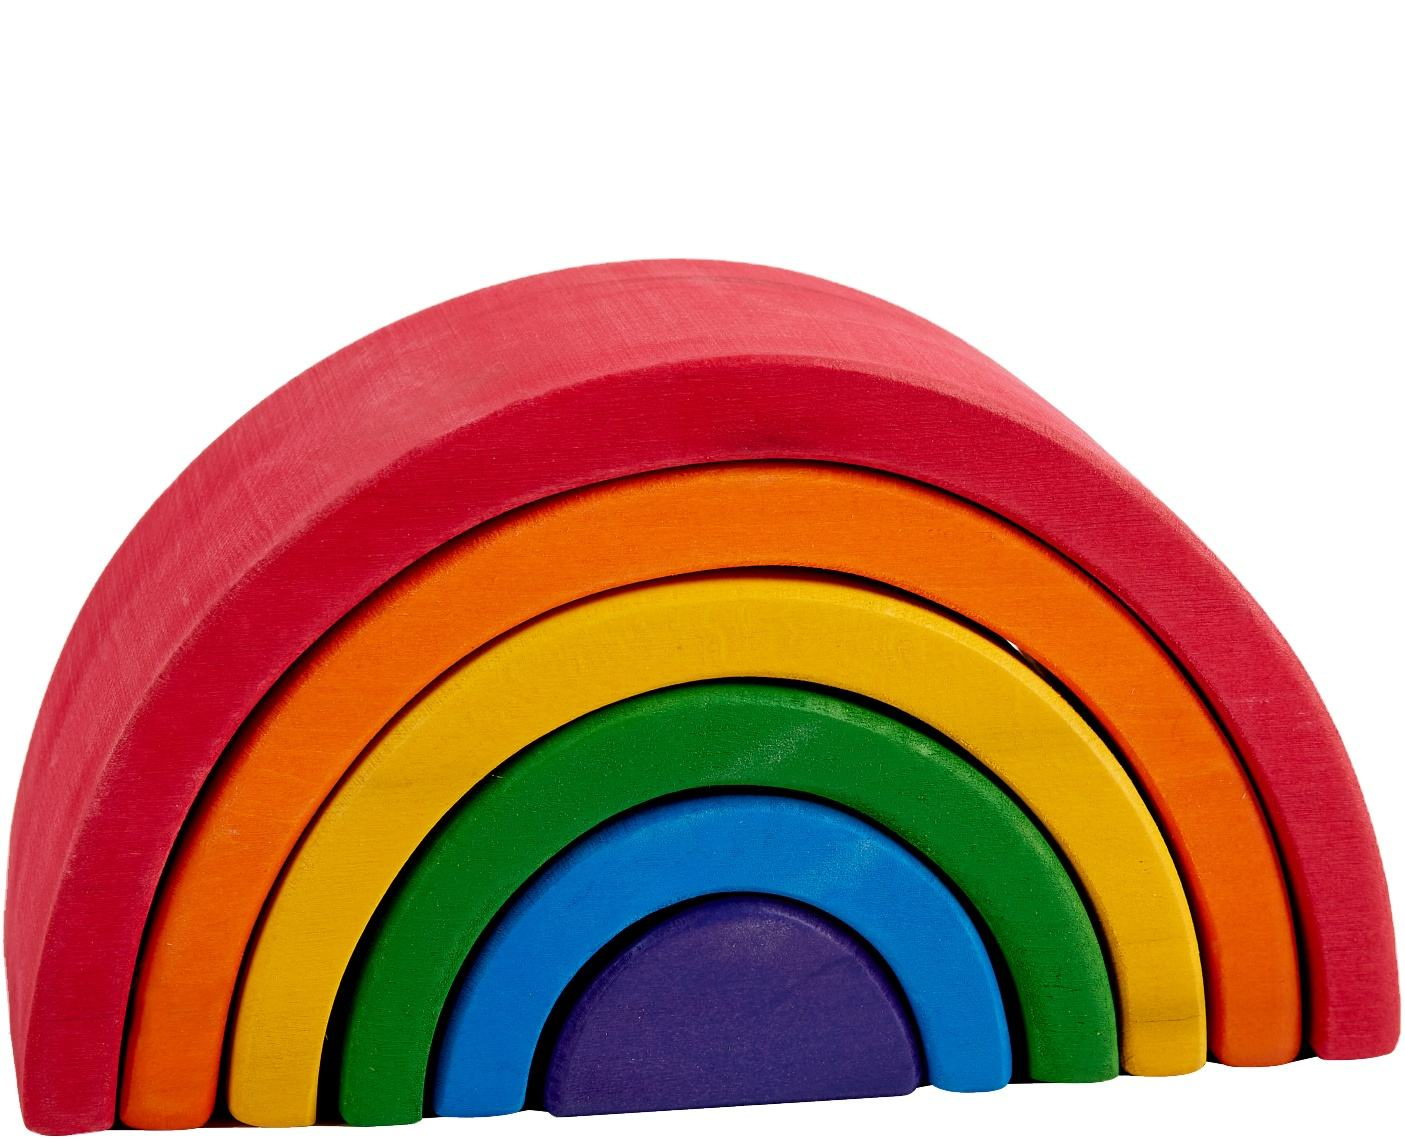 6 Pcs Colored Arch Educational Blocks Montessori Toy Children Wooden Rainbow Stacker For Kids